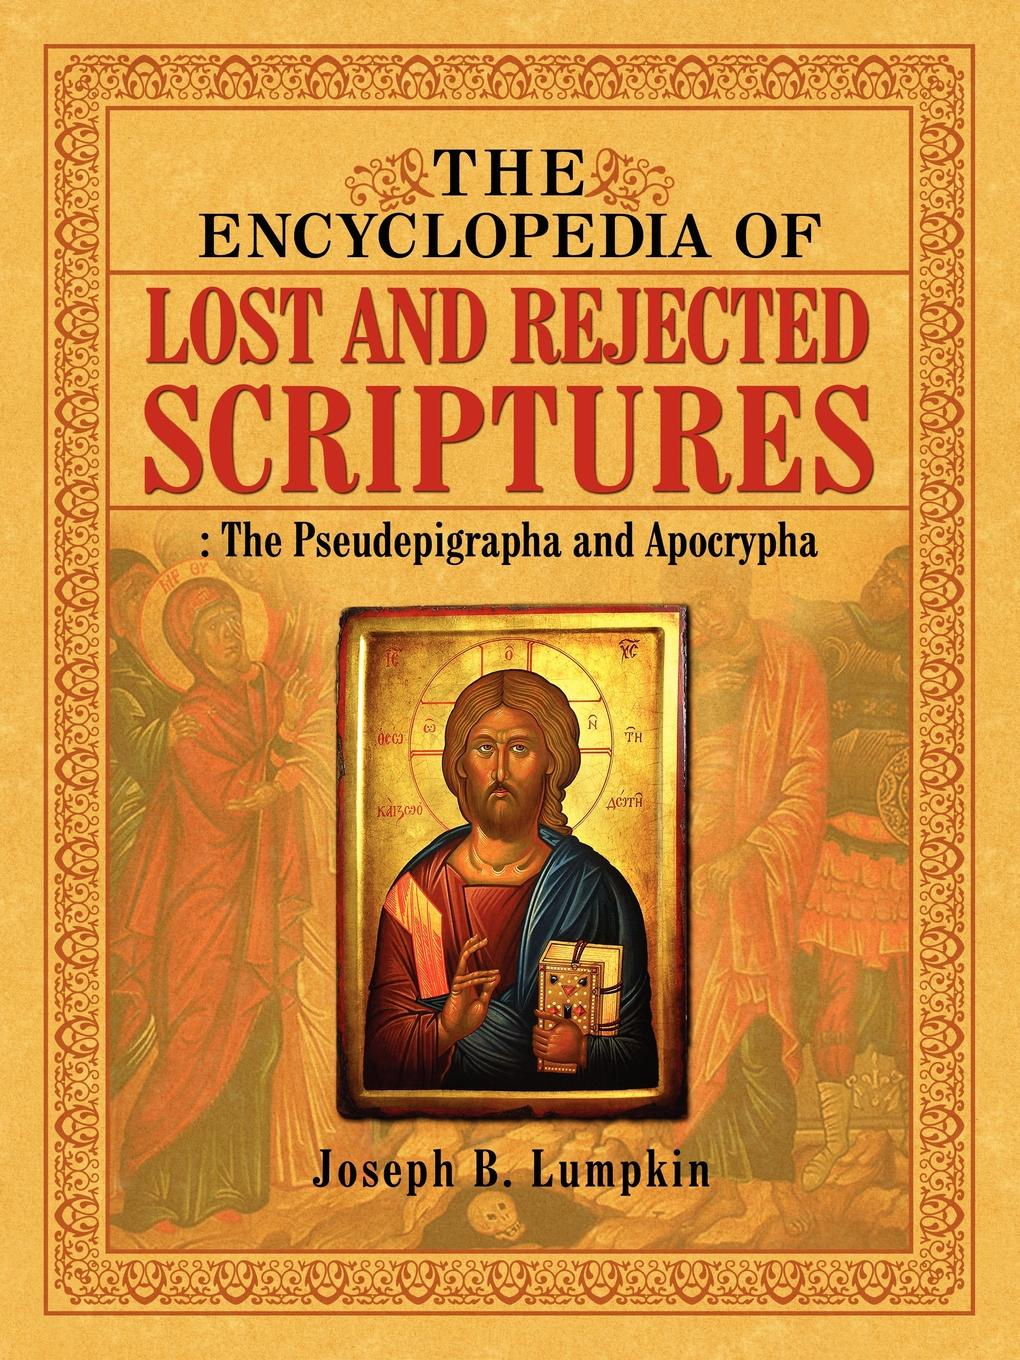 Joseph B. Lumpkin The Encyclopedia of Lost and Rejected Scriptures. The Pseudepigrapha and Apocrypha the gospel of john vol 1 enlarged print